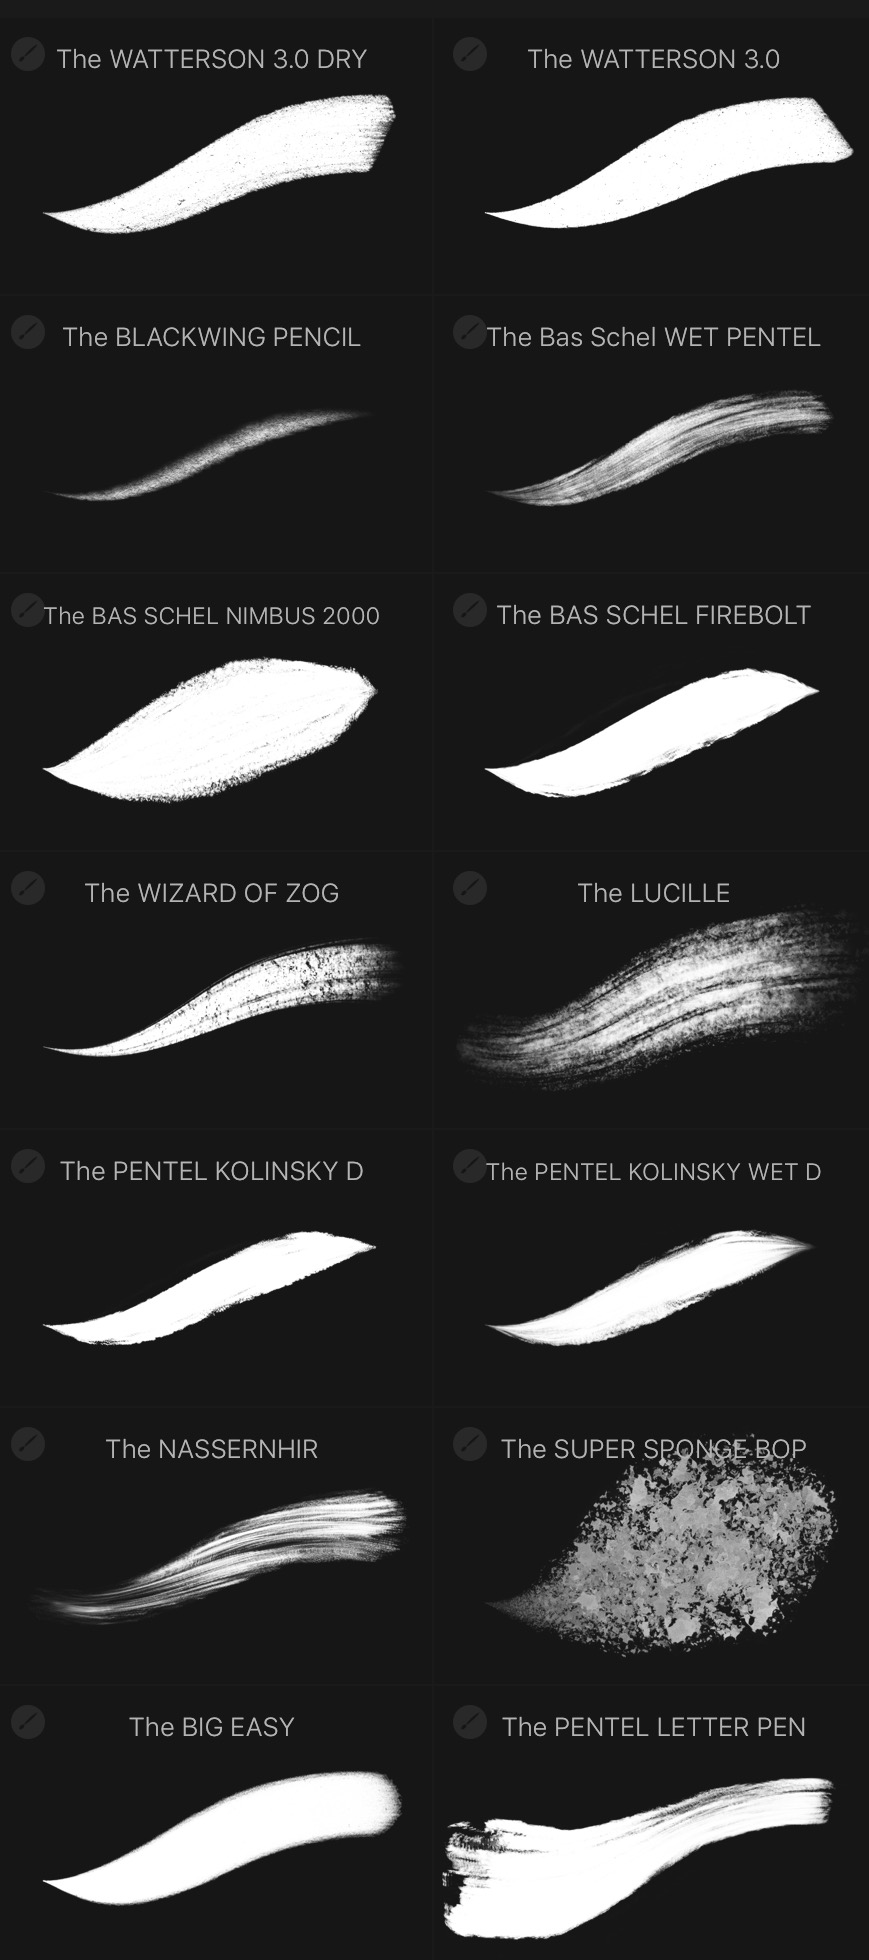 New_Brushes_AUG-18-2017_Thumbnails.jpeg